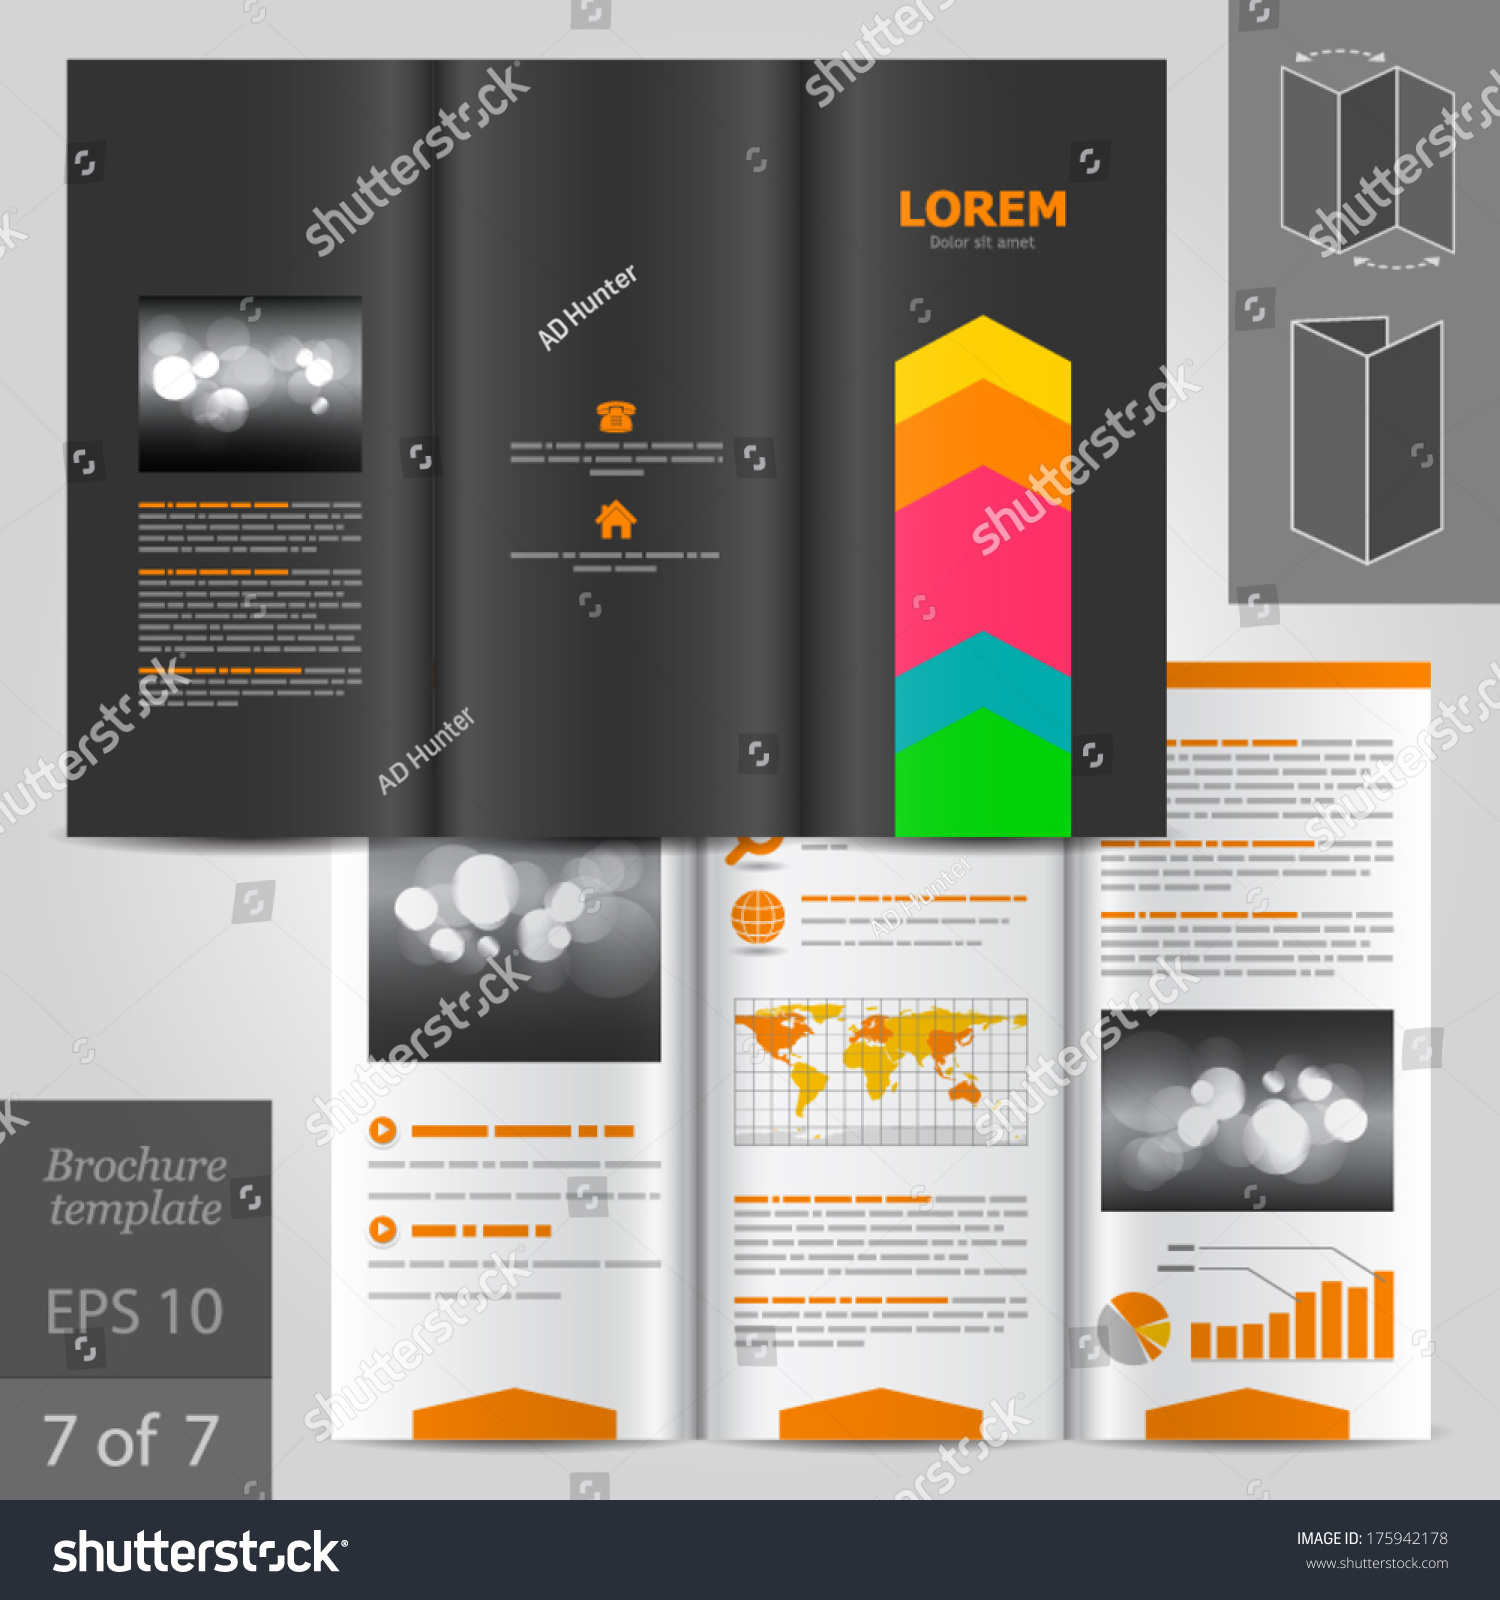 Creative Black Brochure Template Design With Color Art Elements